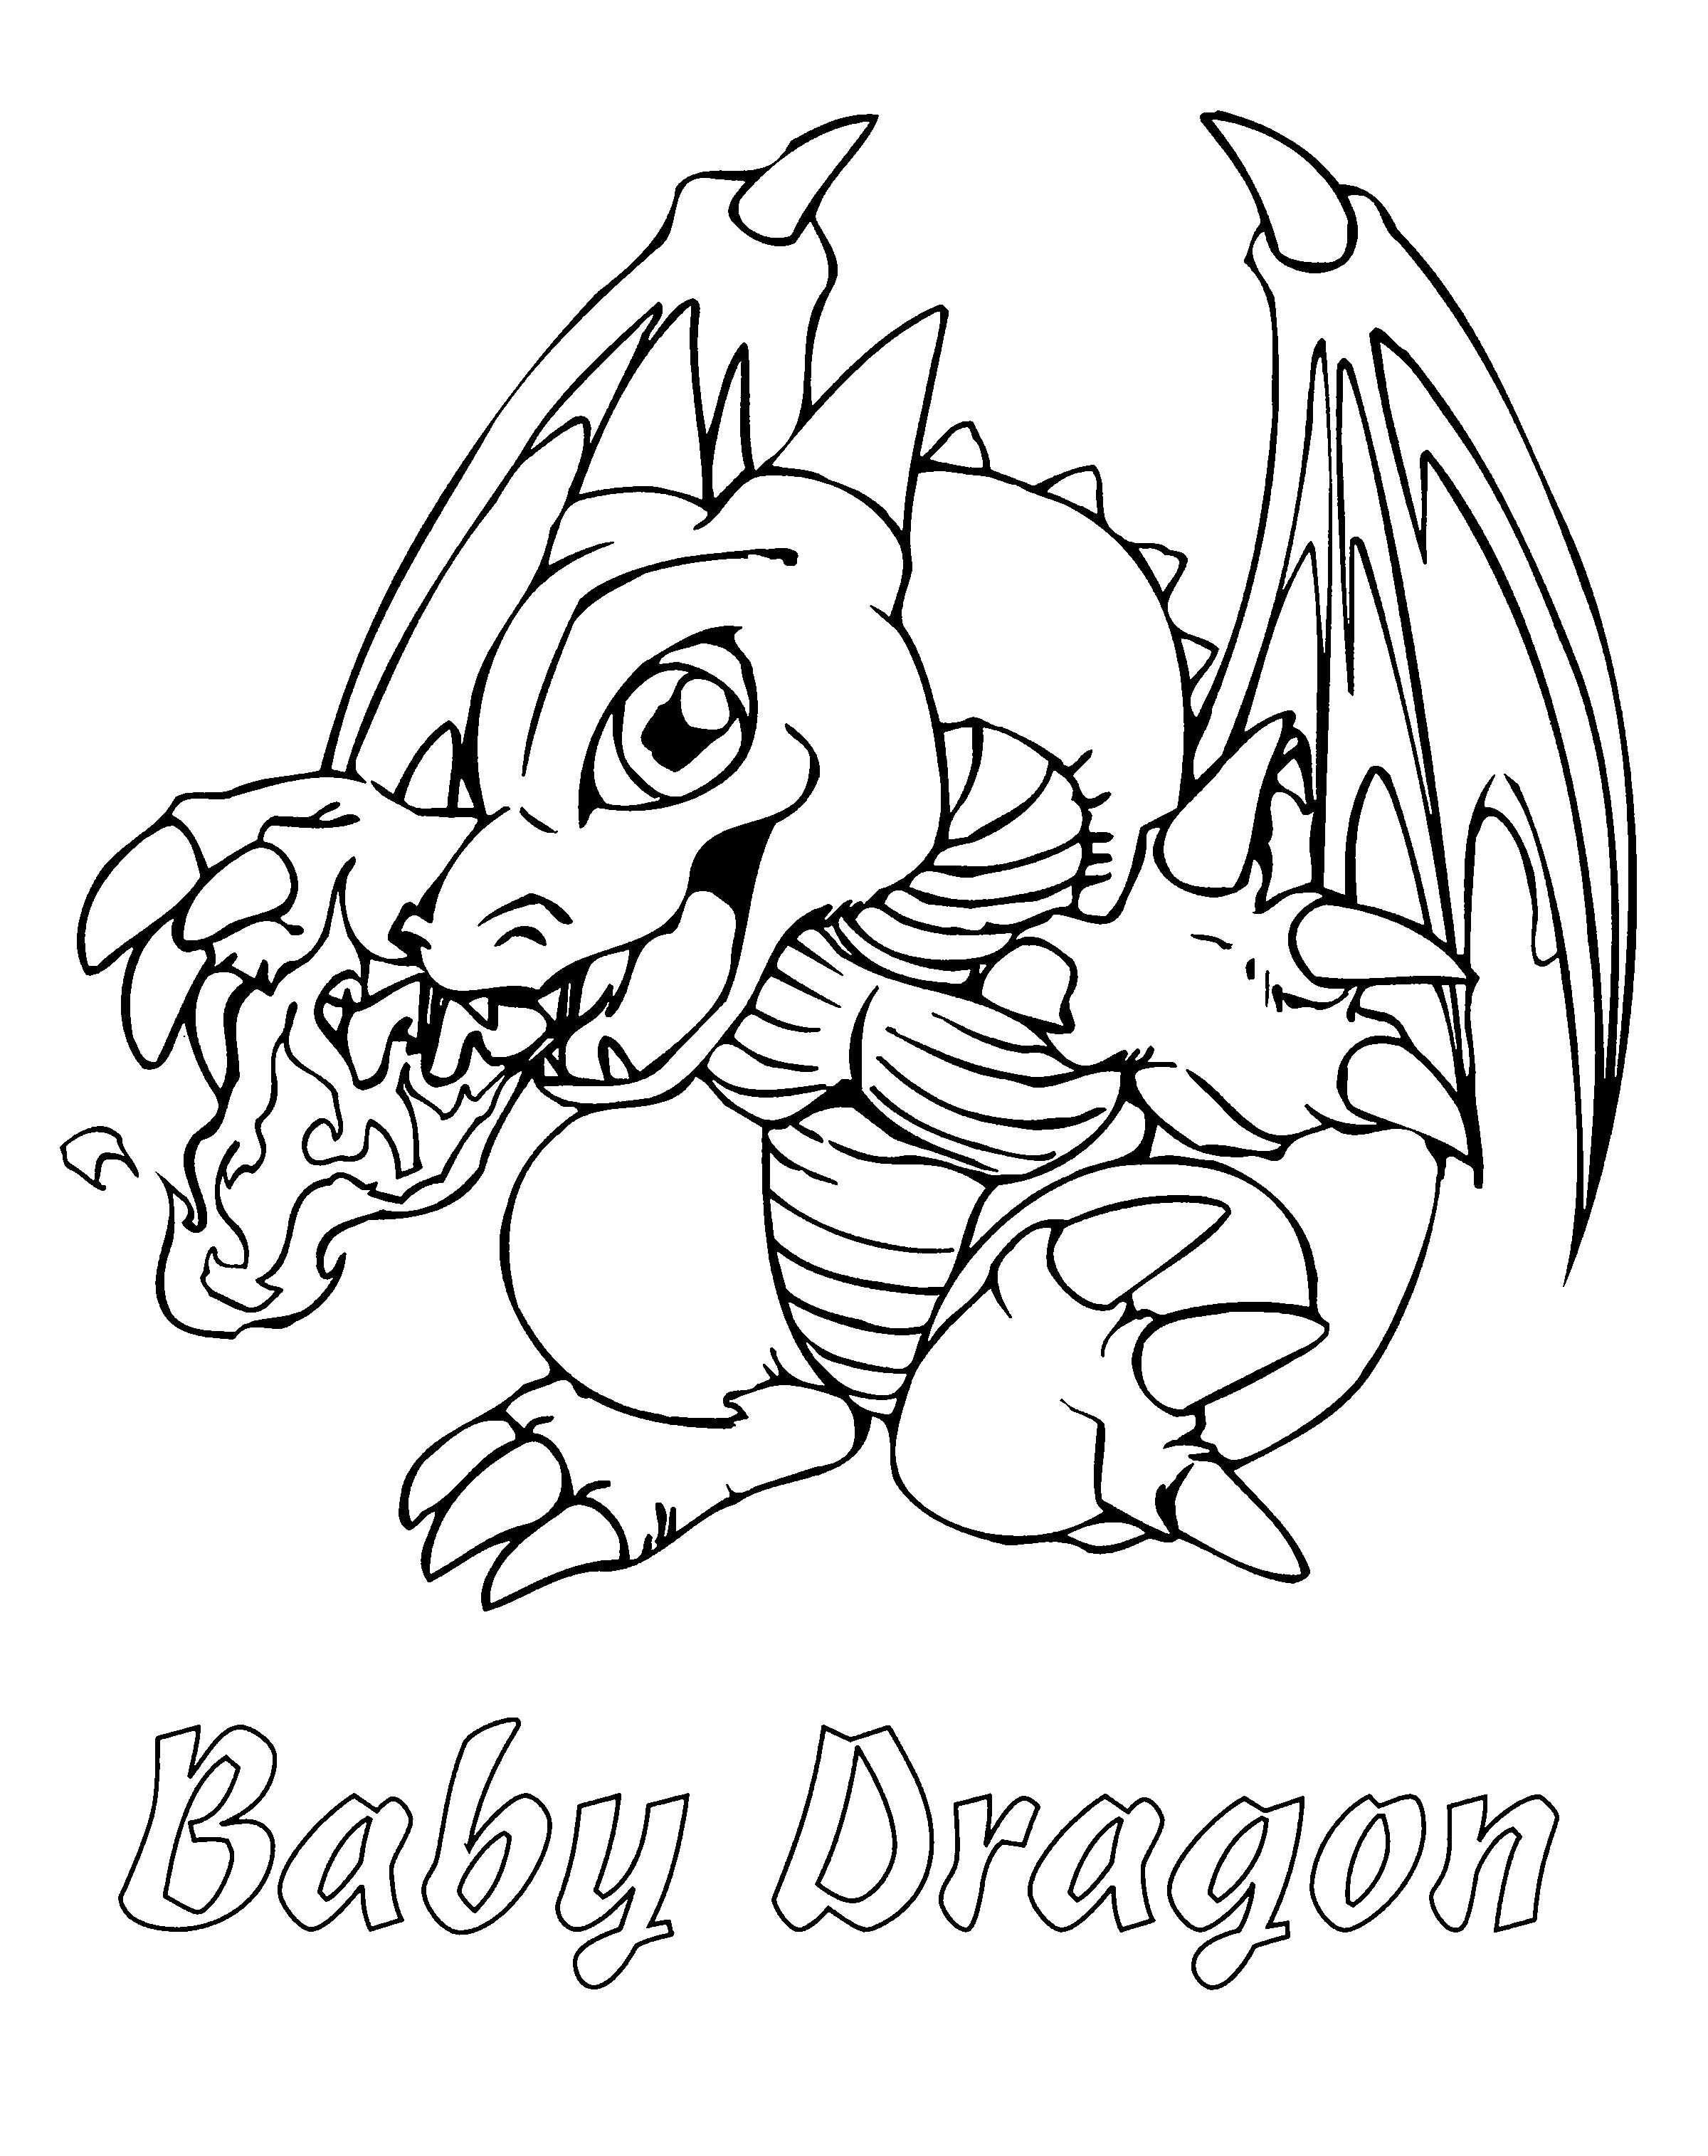 images for baby dragons black and white - Dragonvale Dragons Coloring Pages